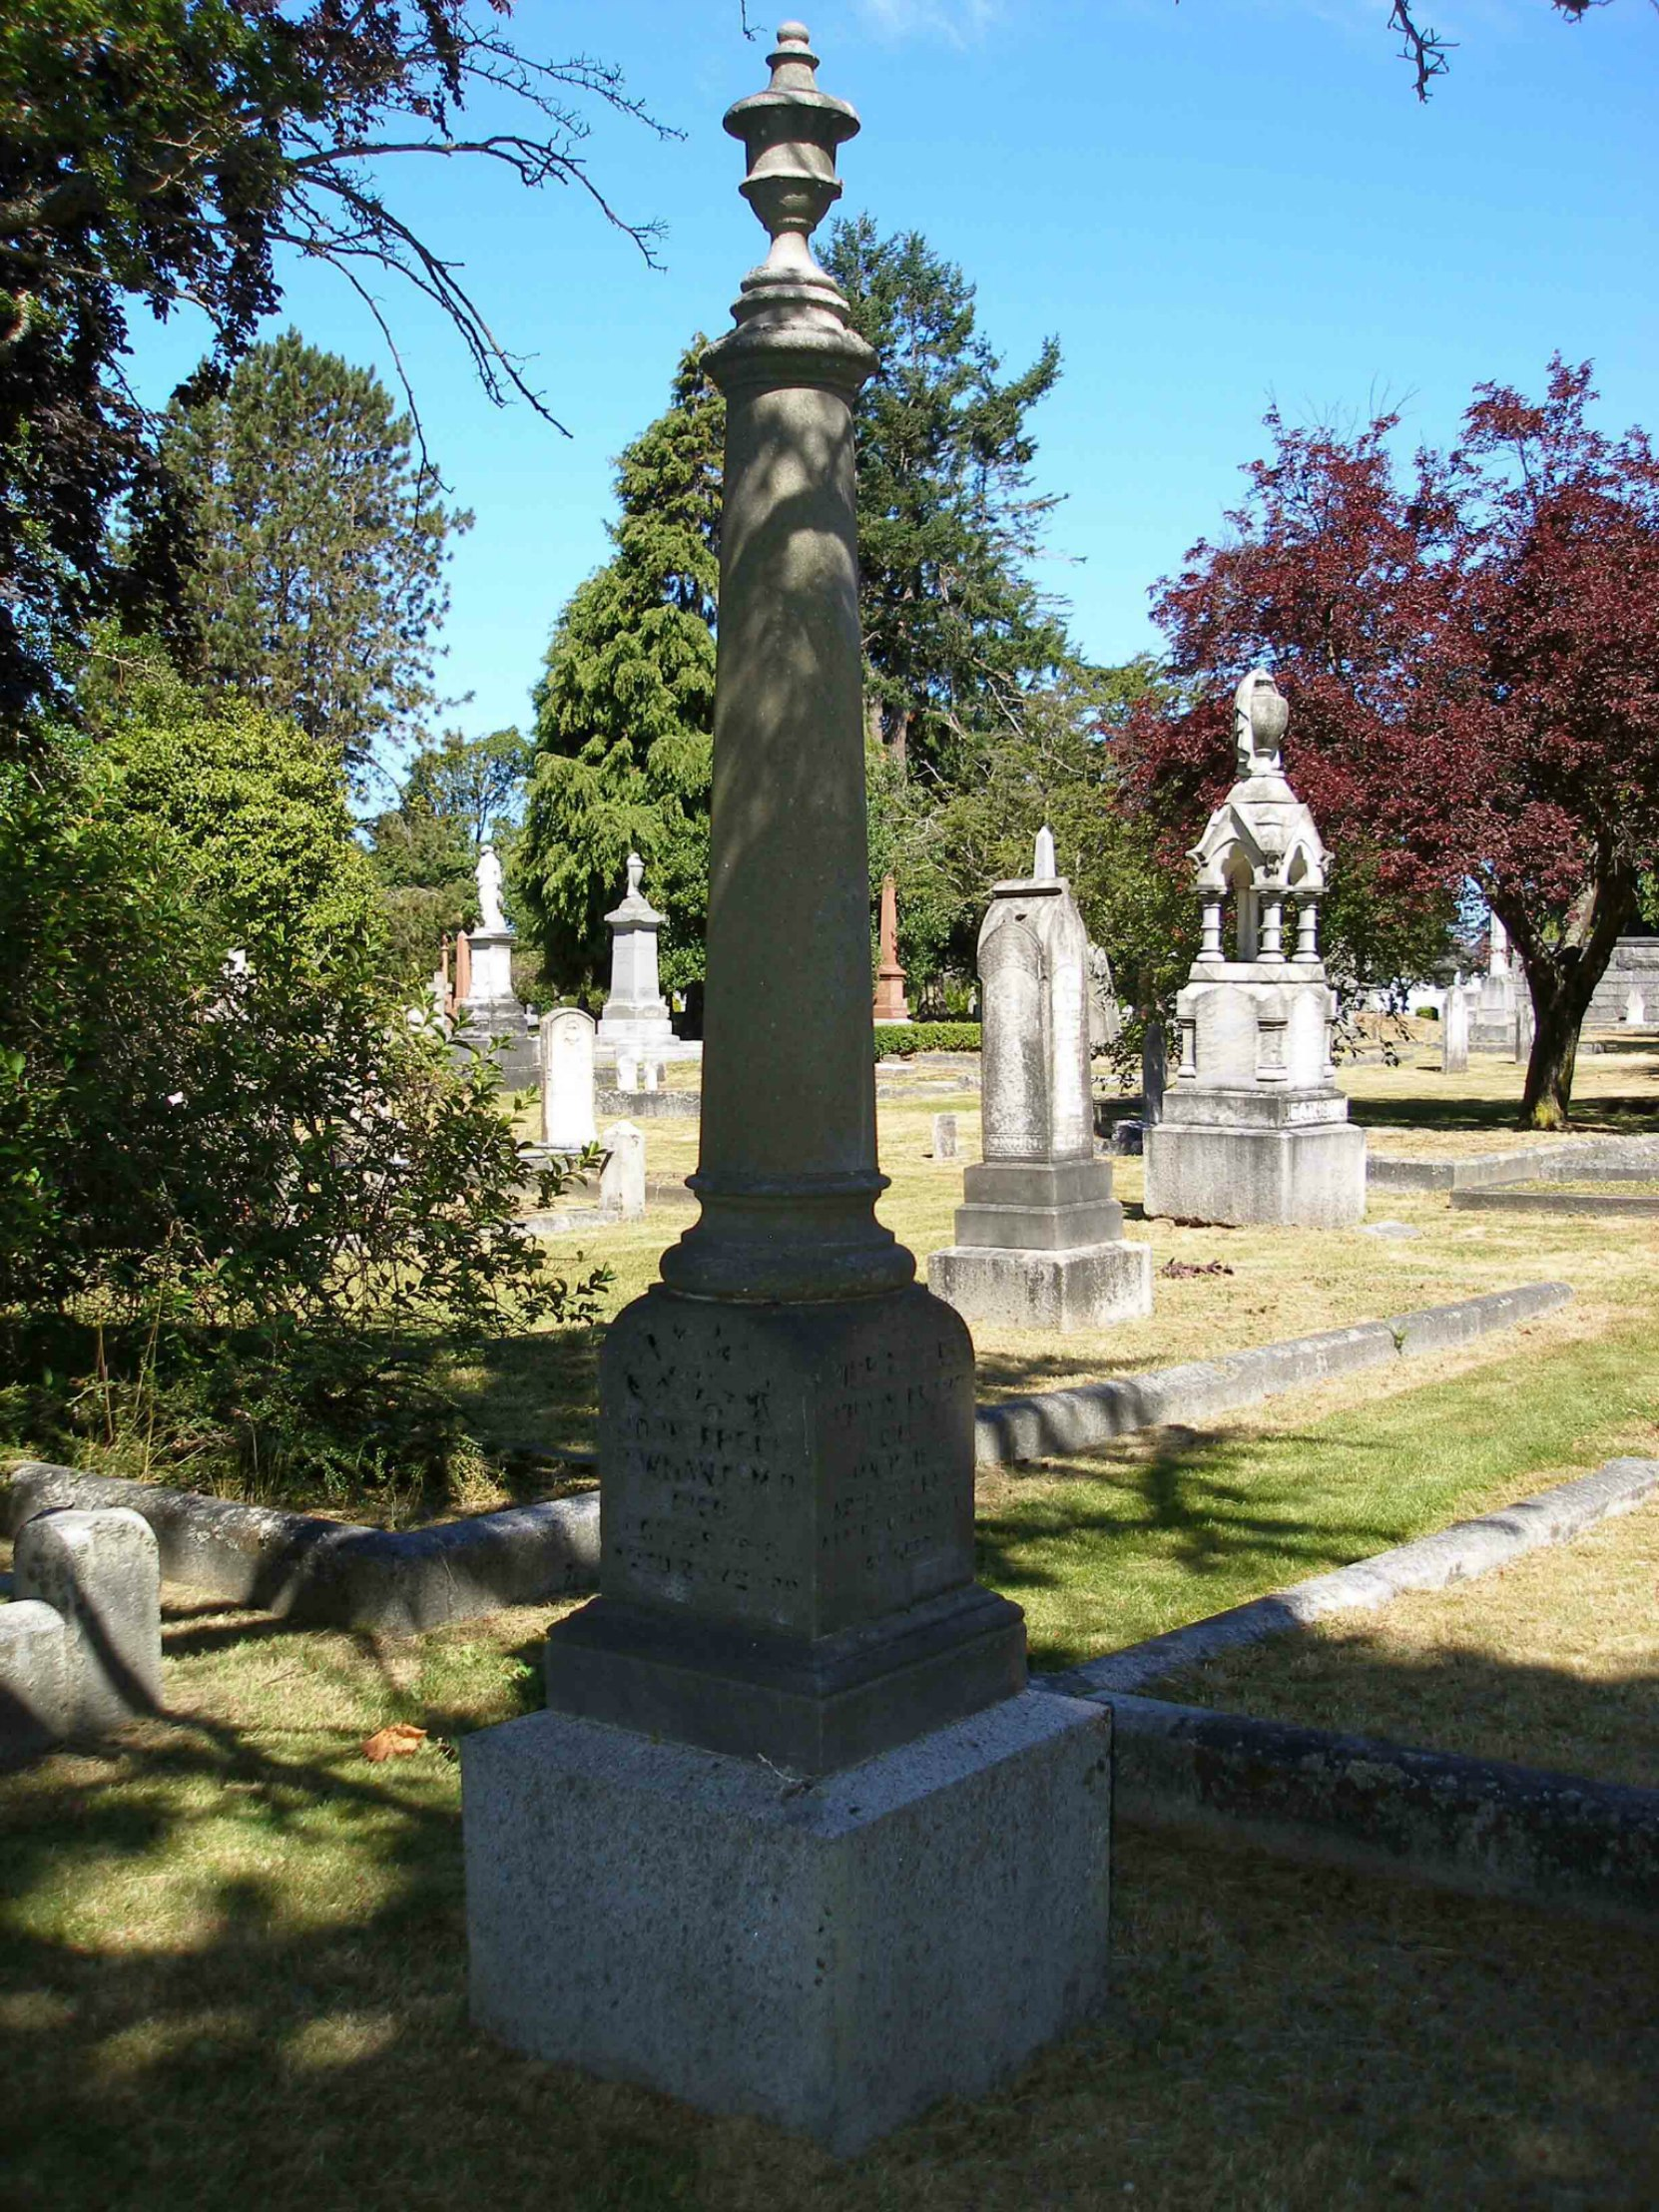 The grave of Dr. John Errol Newman in Ross Bay cemetery, Victoria, B.C.